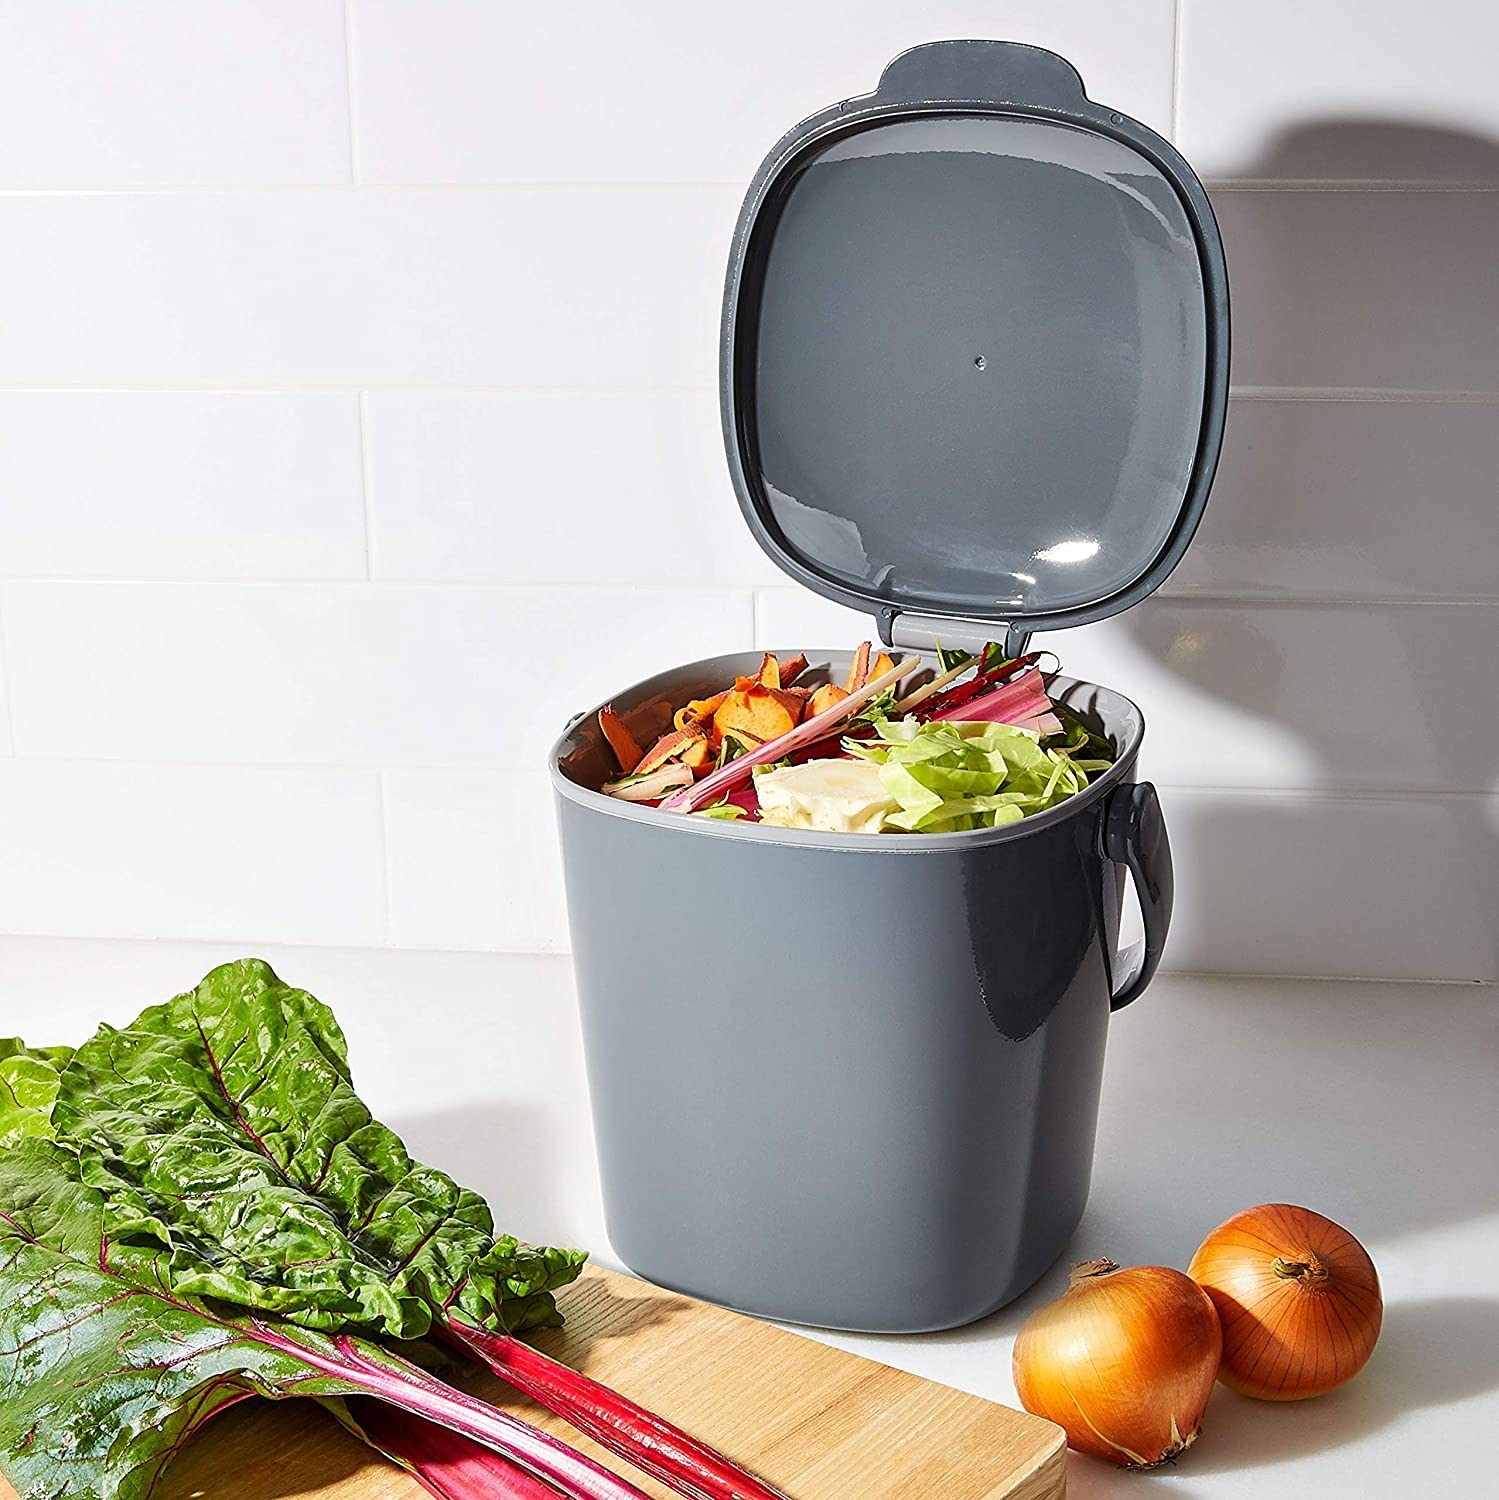 A gray compost bin next to produce